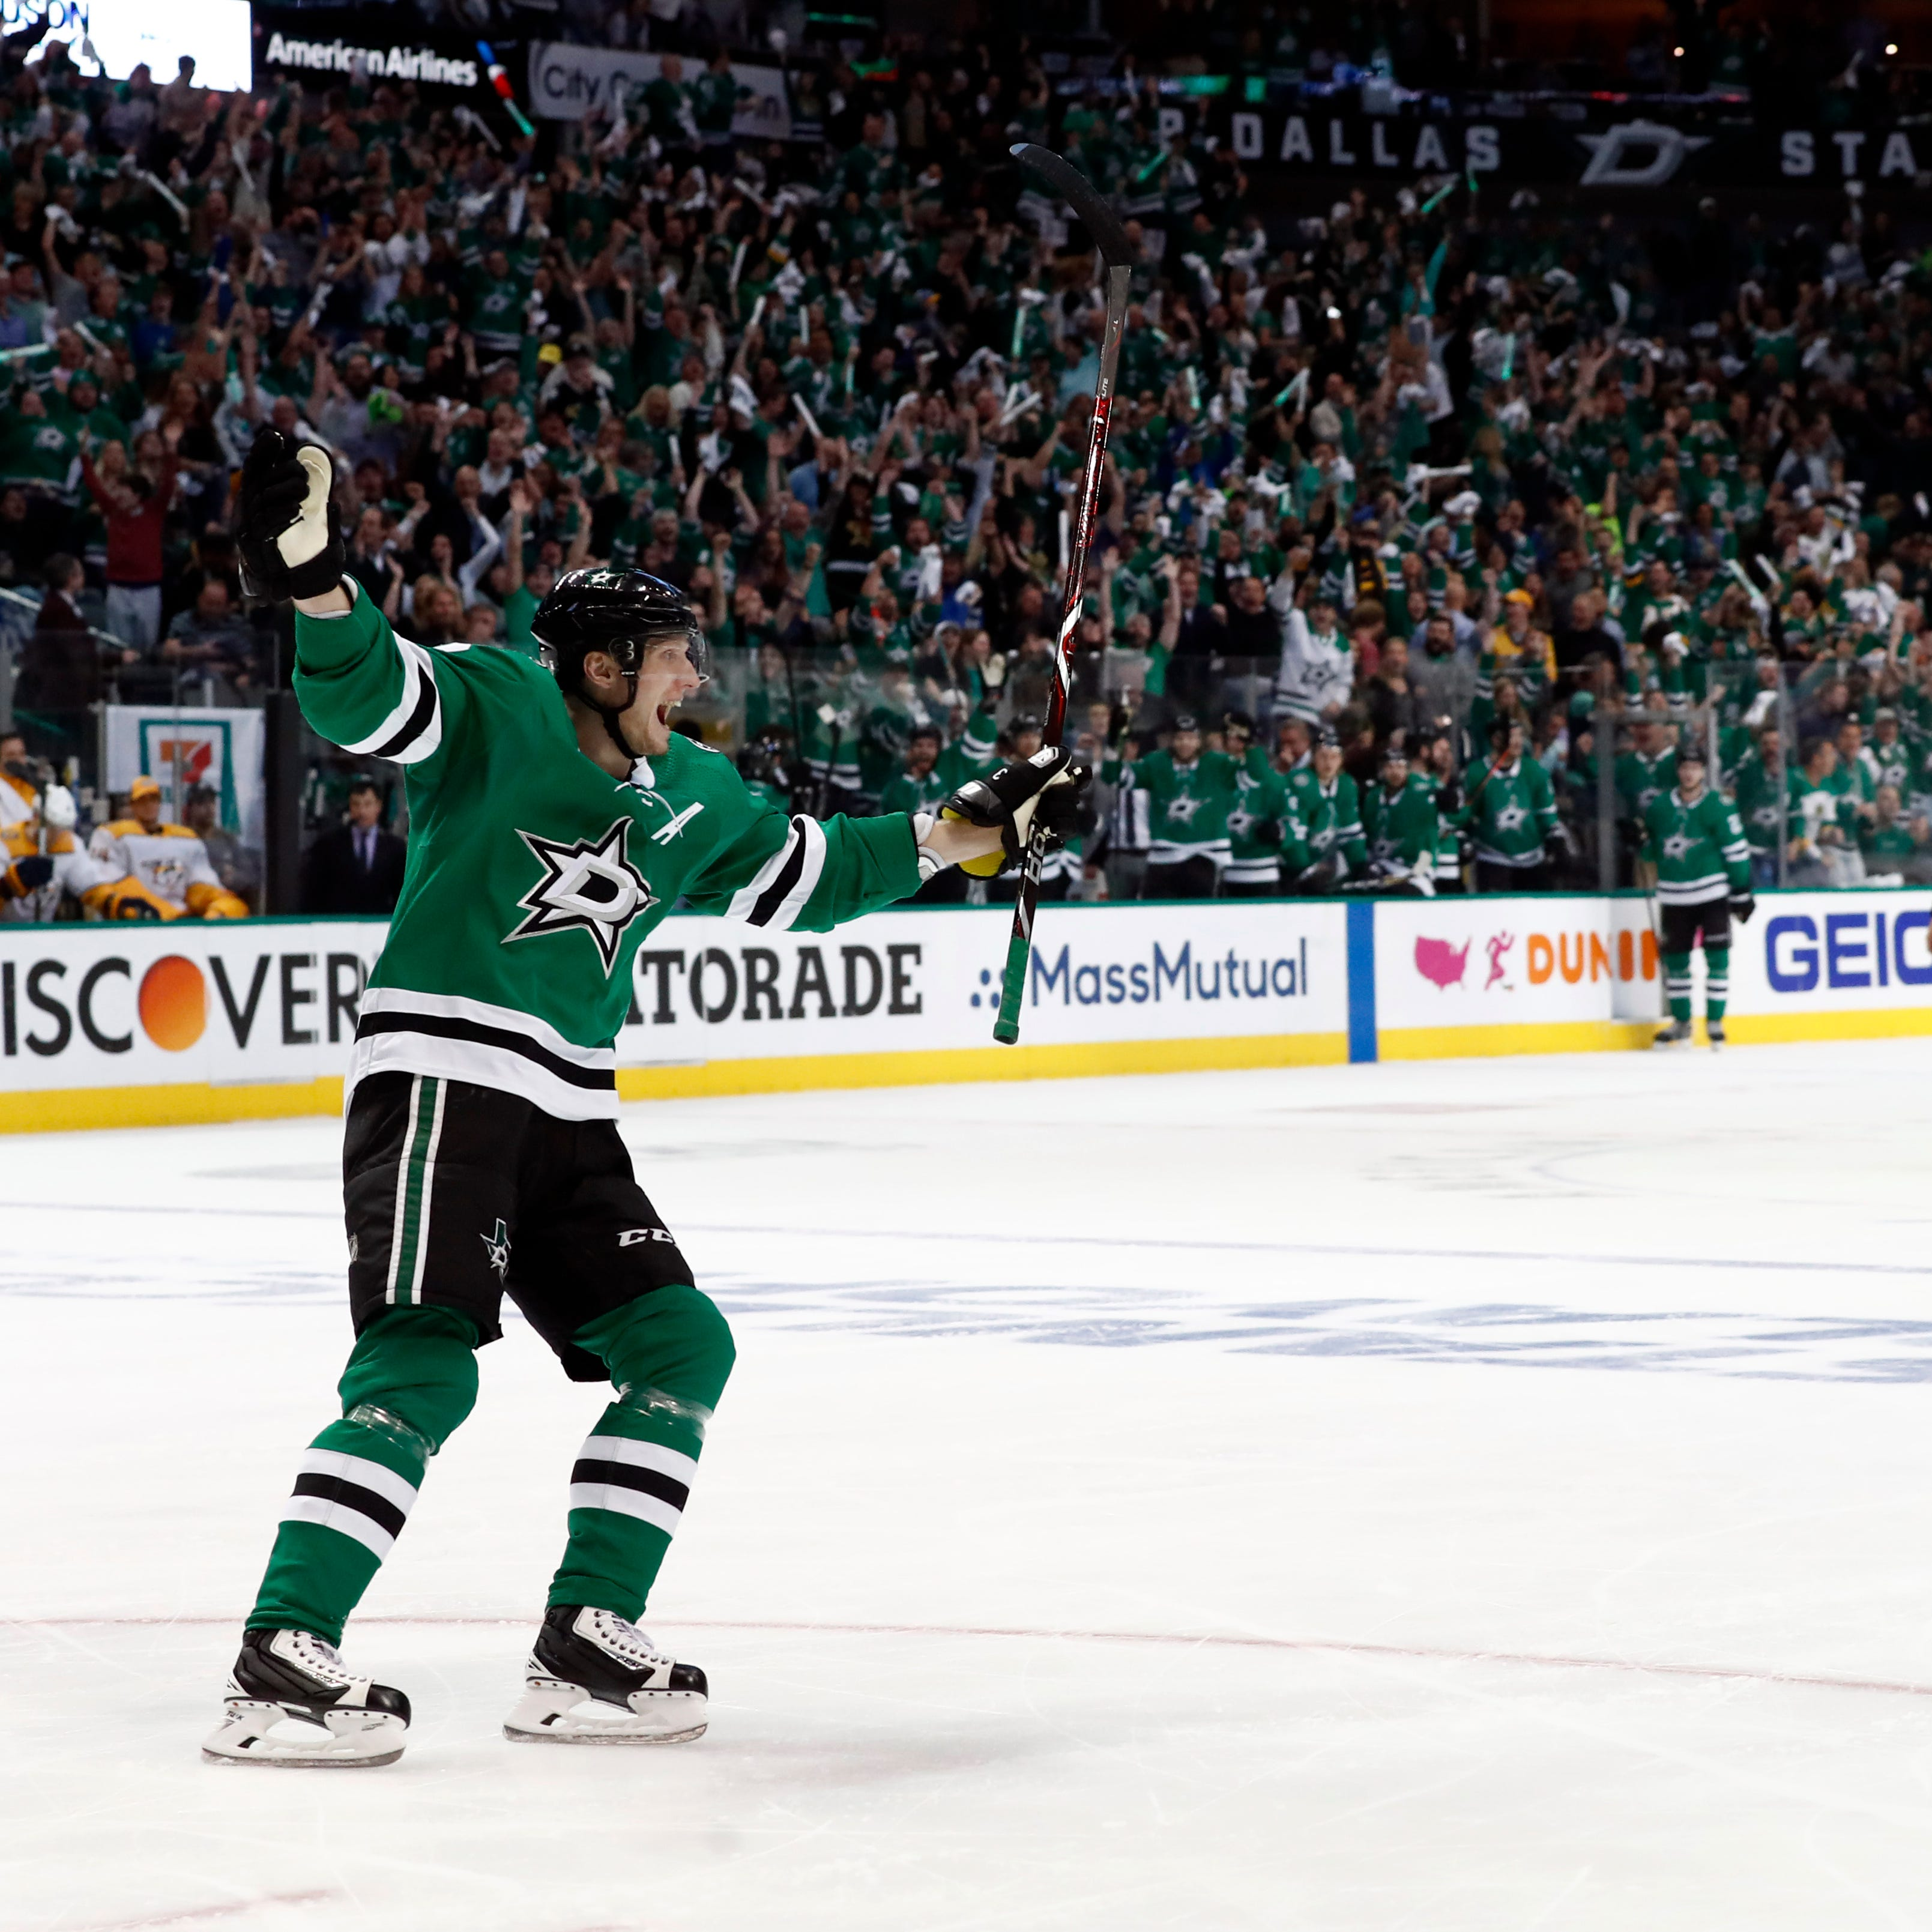 Watch John Klingberg's game-winning goal in Game 6 of the Stanley Cup Playoffs